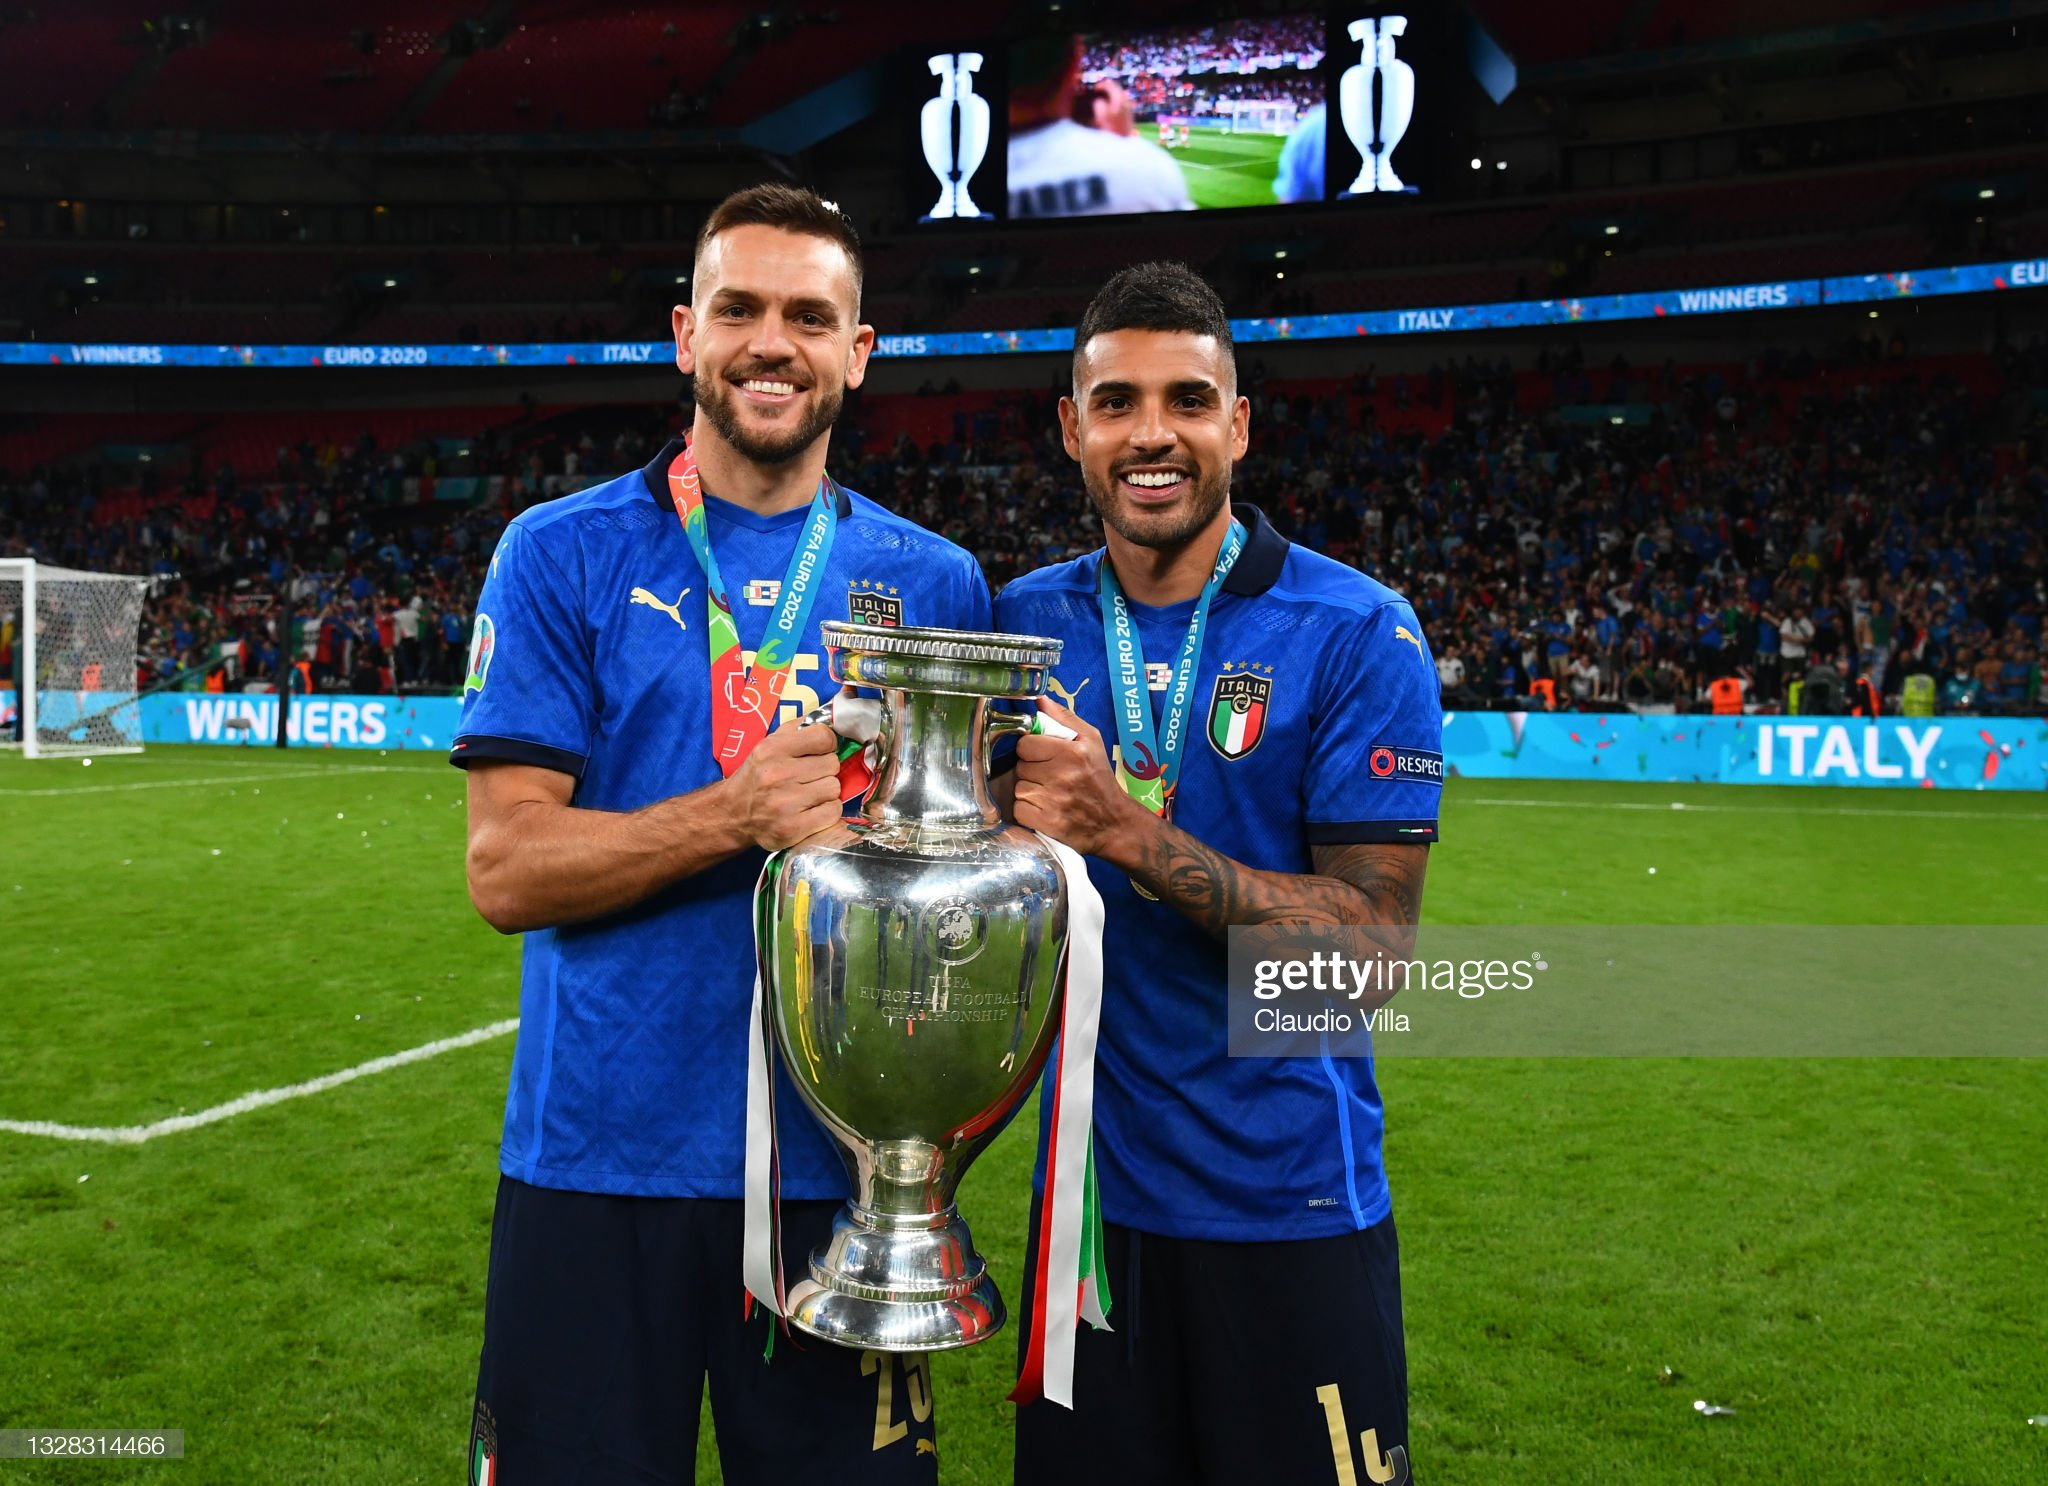 ¿Cuánto mide Emerson Palmieri? - Real height Rafael-toloi-and-emerson-palmieri-of-italy-celebrate-with-the-henri-picture-id1328314466?s=2048x2048